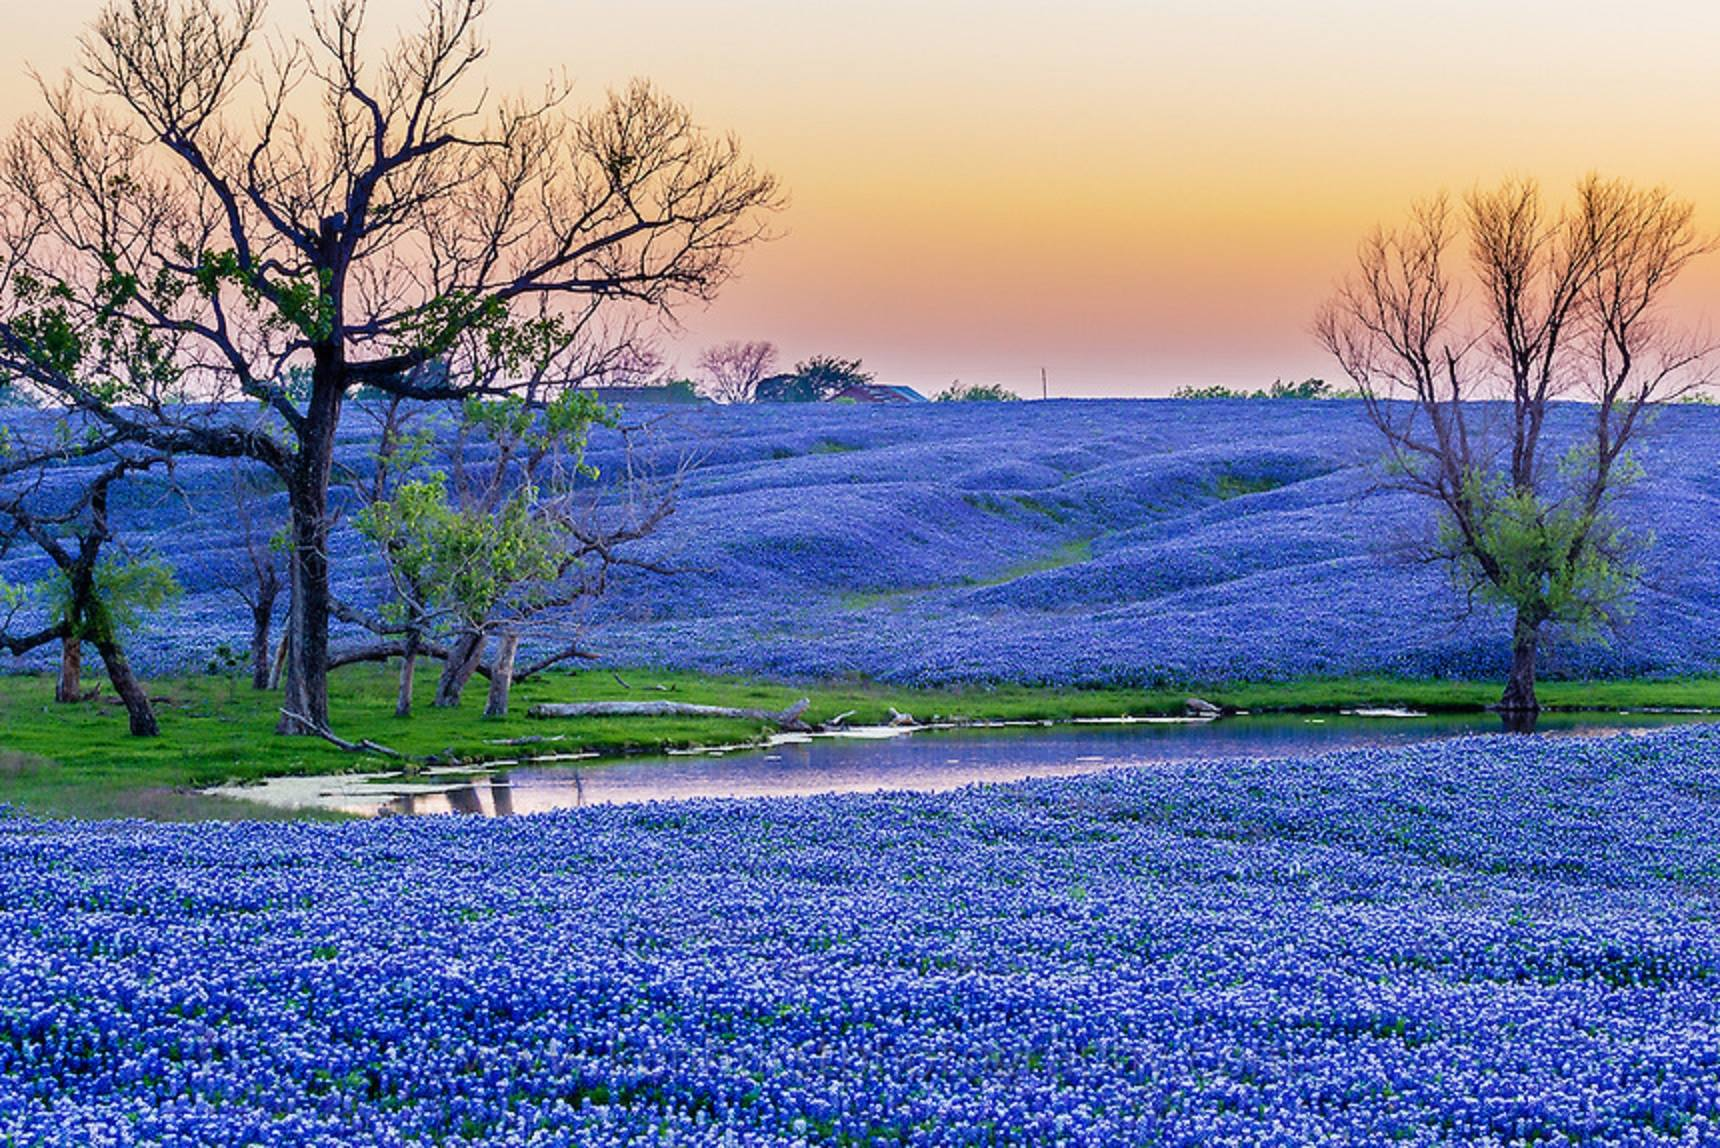 Ennis Bluebonnet Paradise - Lisa Birdsong (Image courtesy of Texas Wildflower Project)